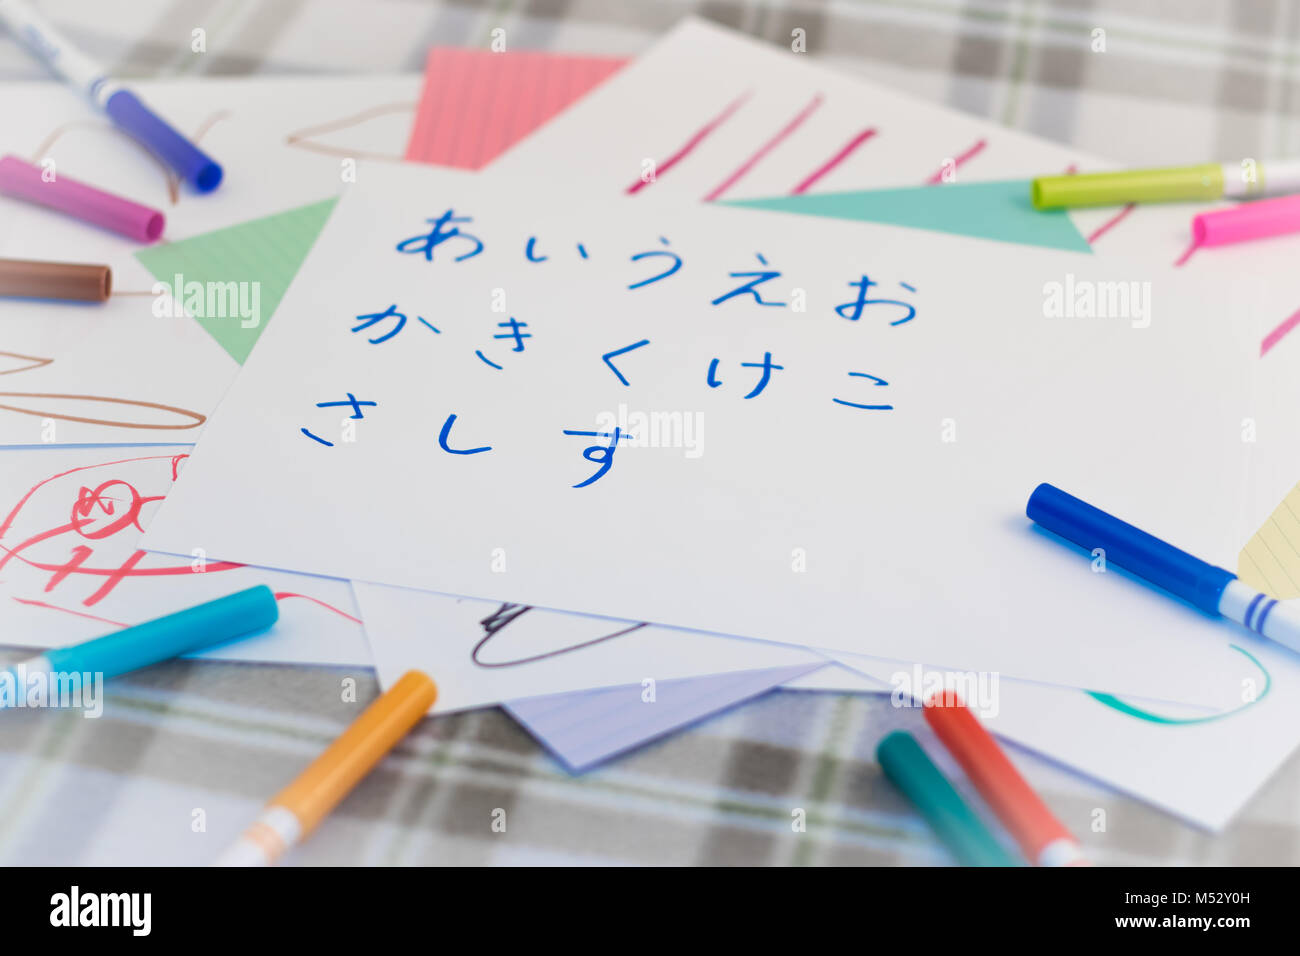 Japanese alphabet stock photos japanese alphabet stock images japanese kids writing japanese alphabet character for practice stock image biocorpaavc Image collections